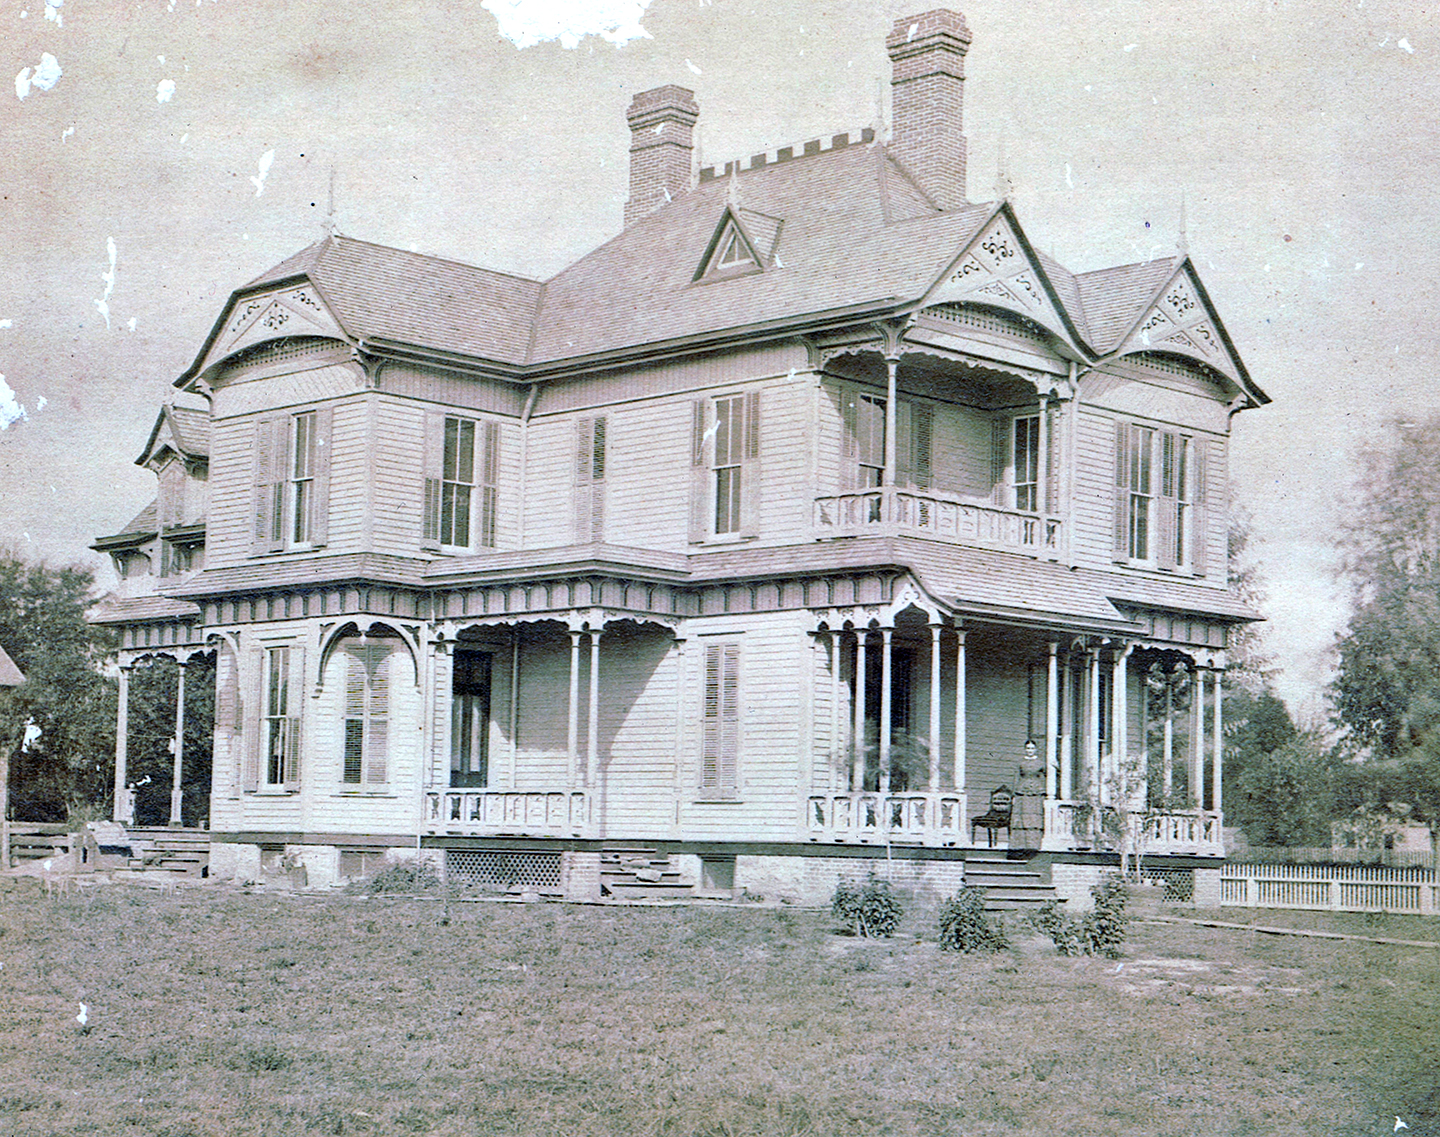 Vivell house, Carrollton